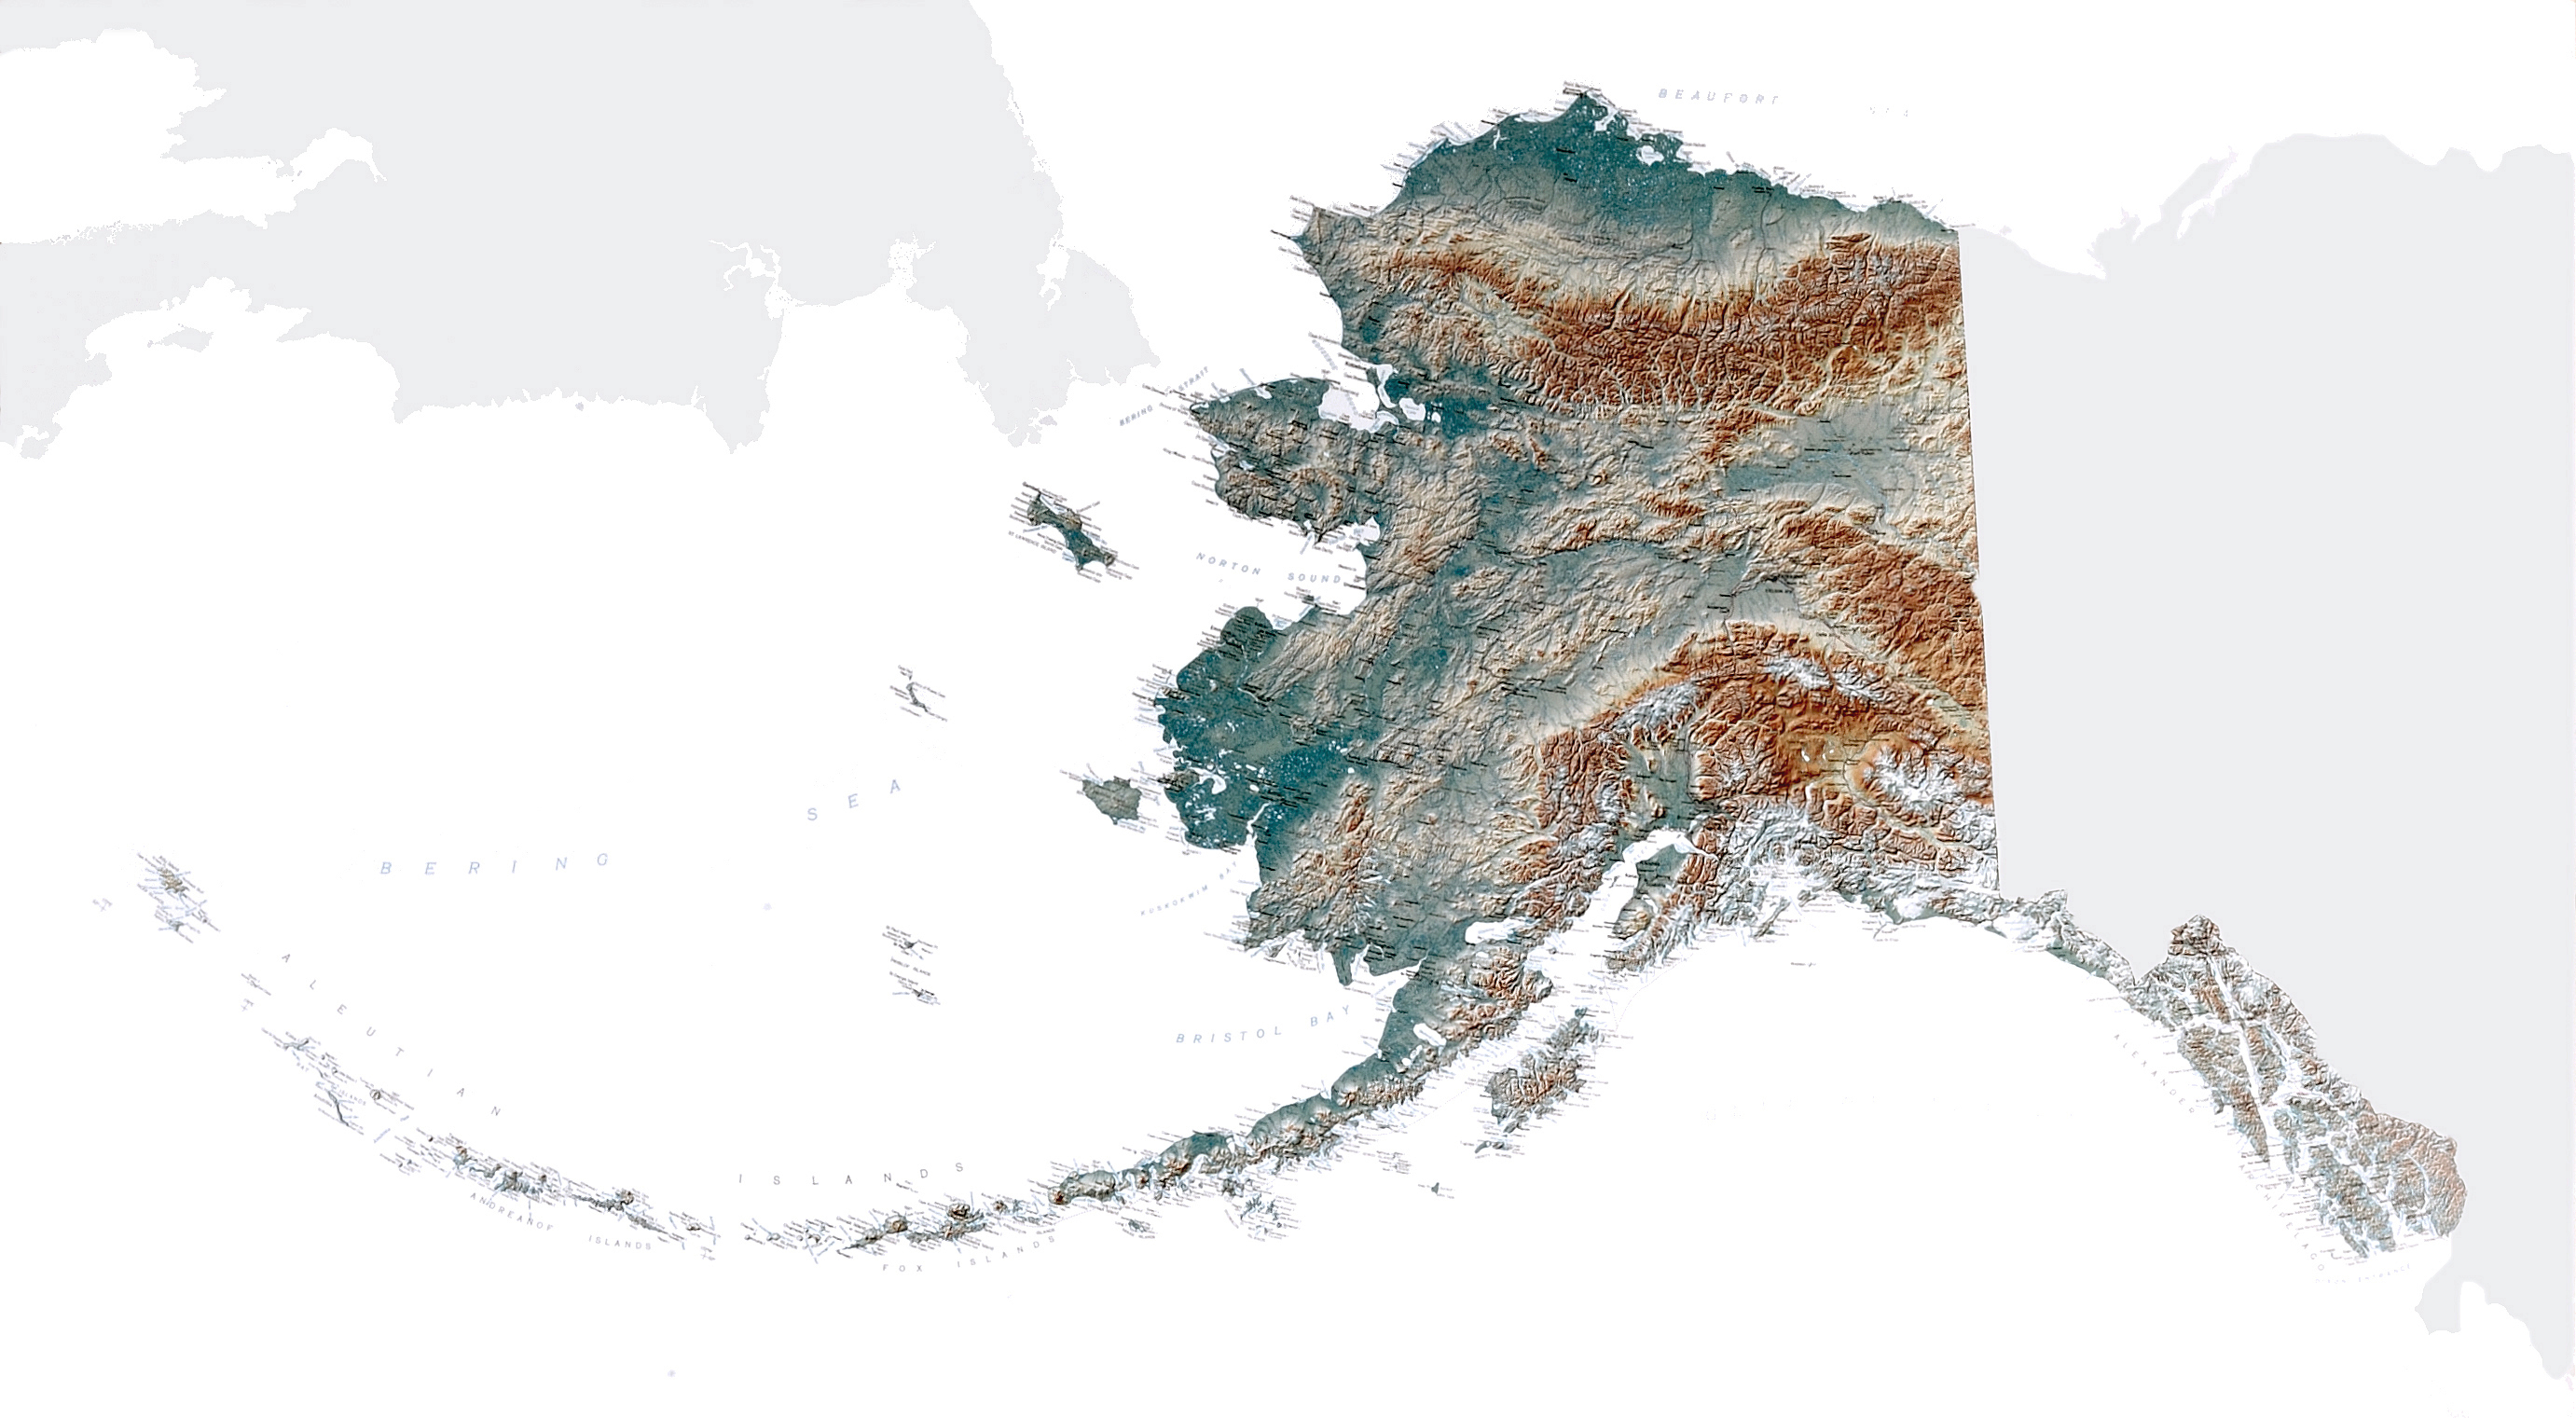 Large Topographical Map Of Alaska State Alaska State Usa Maps